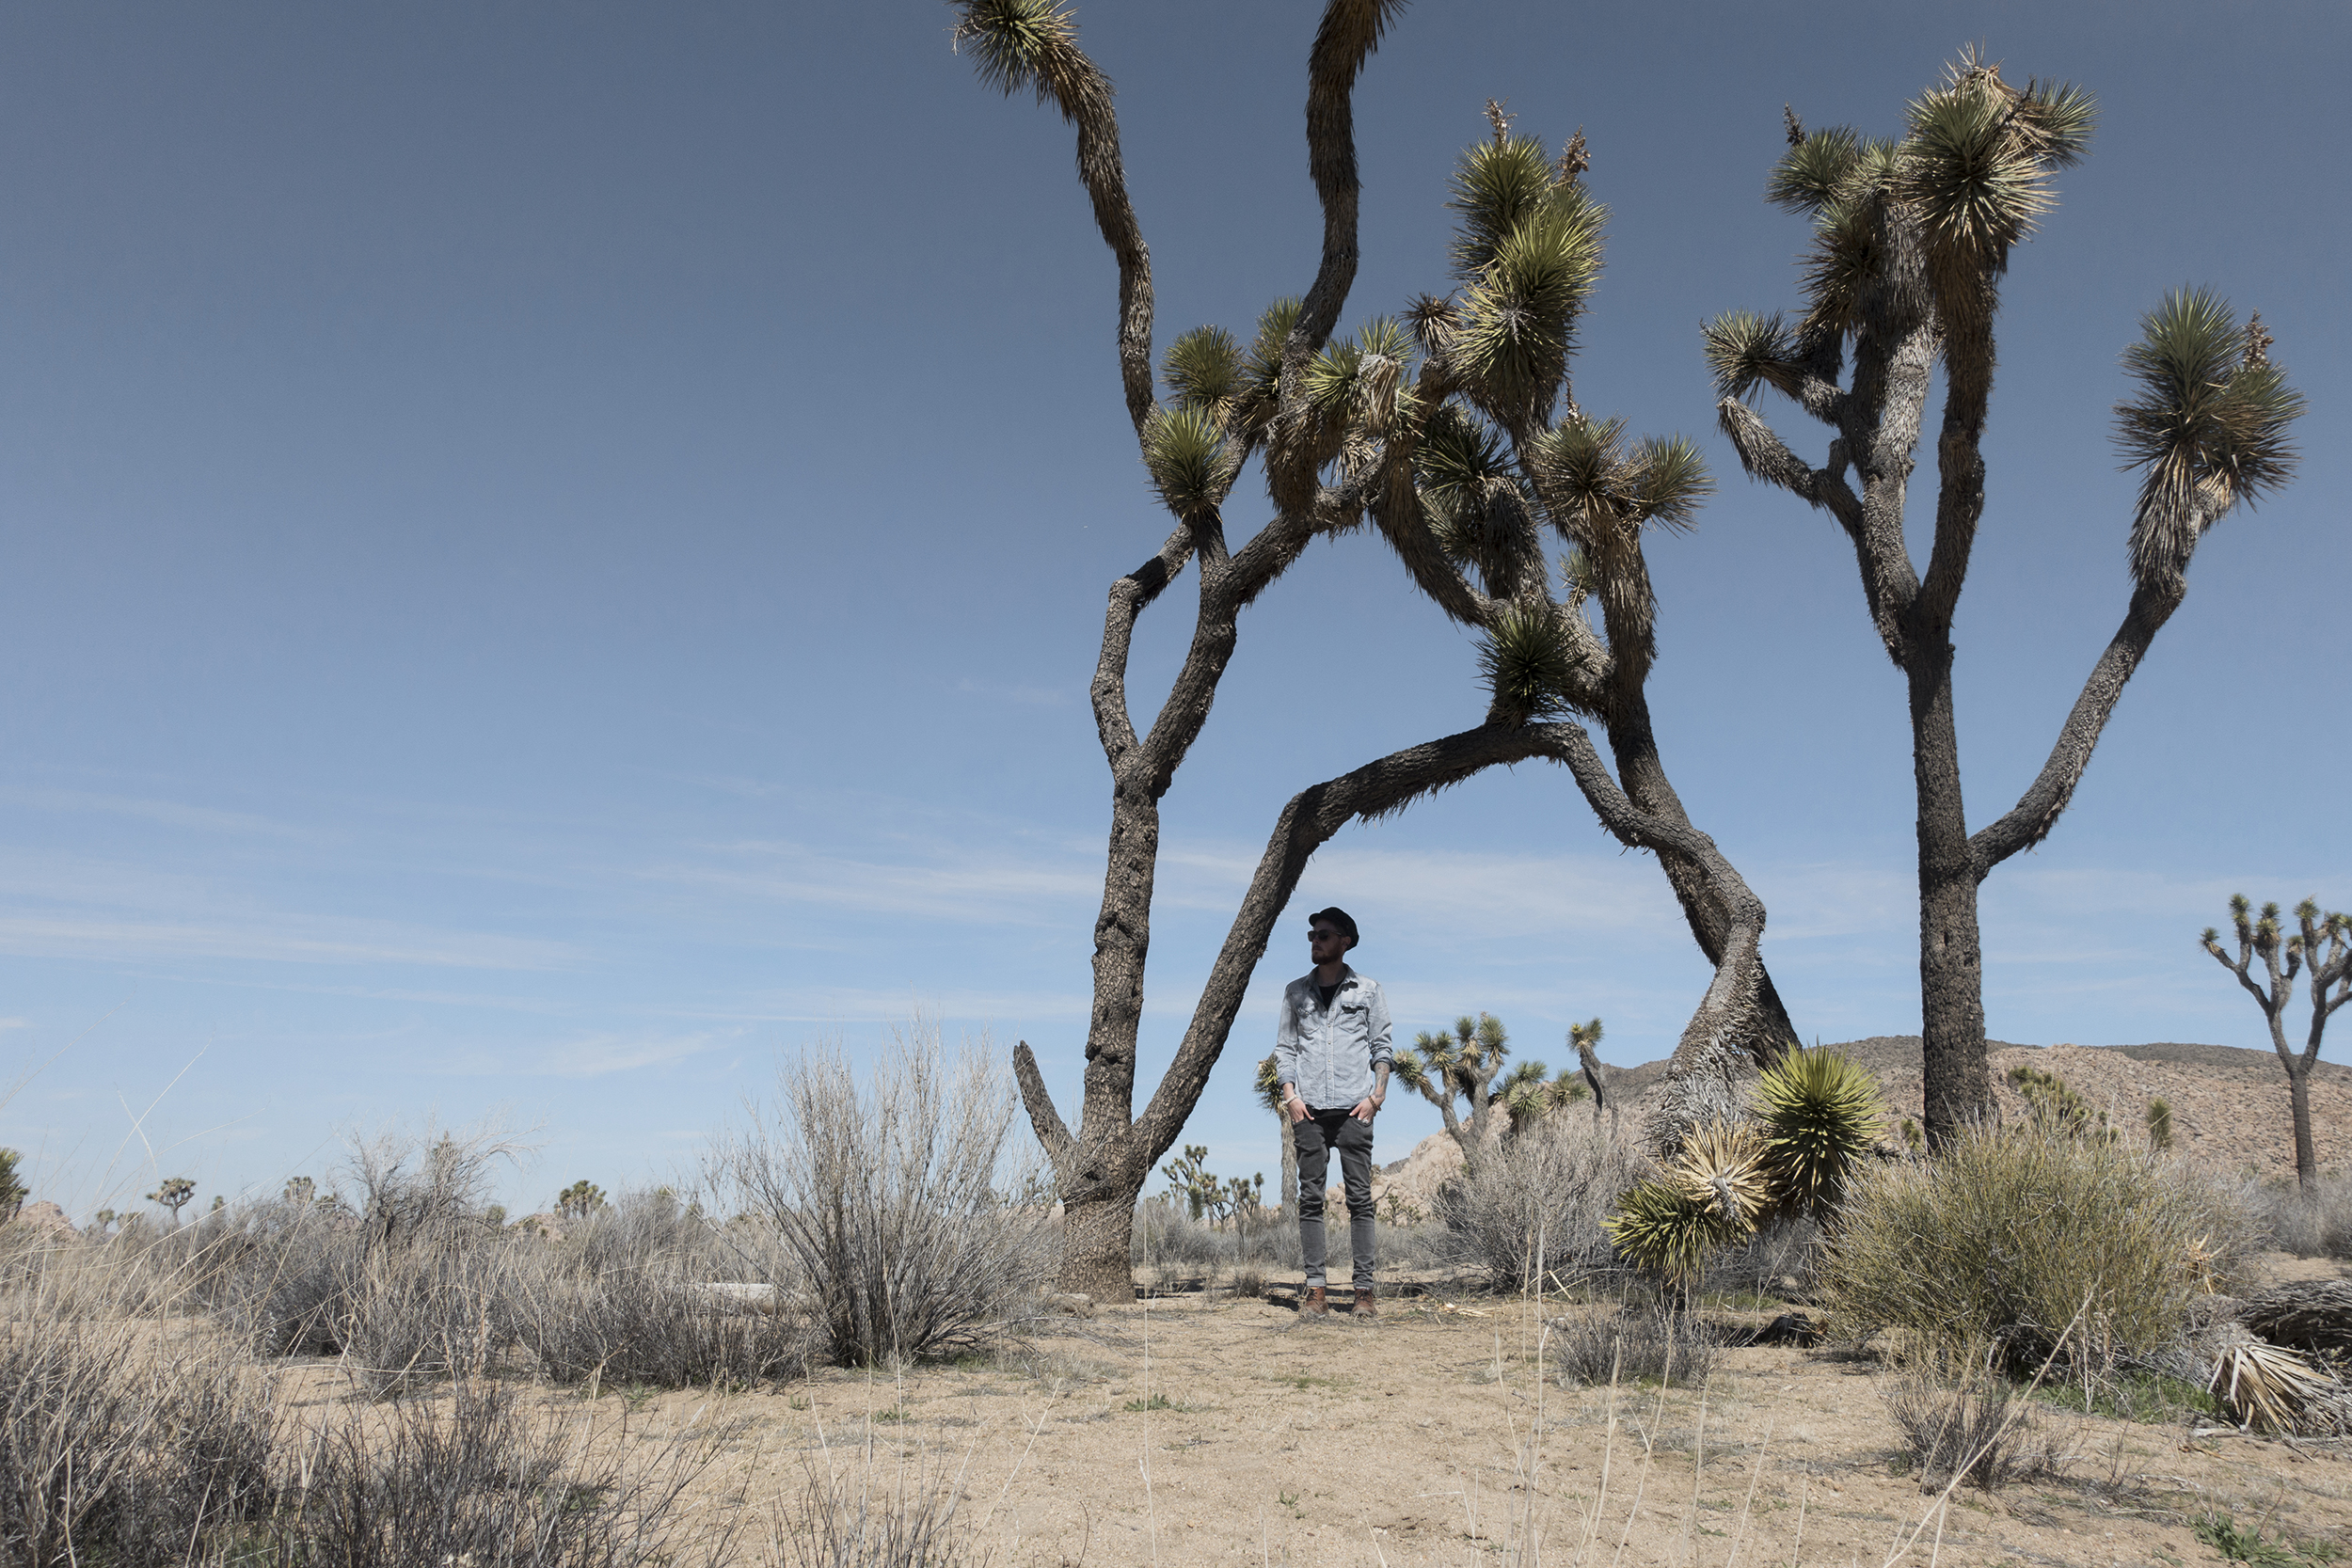 Joshua Tree, 2:00pm